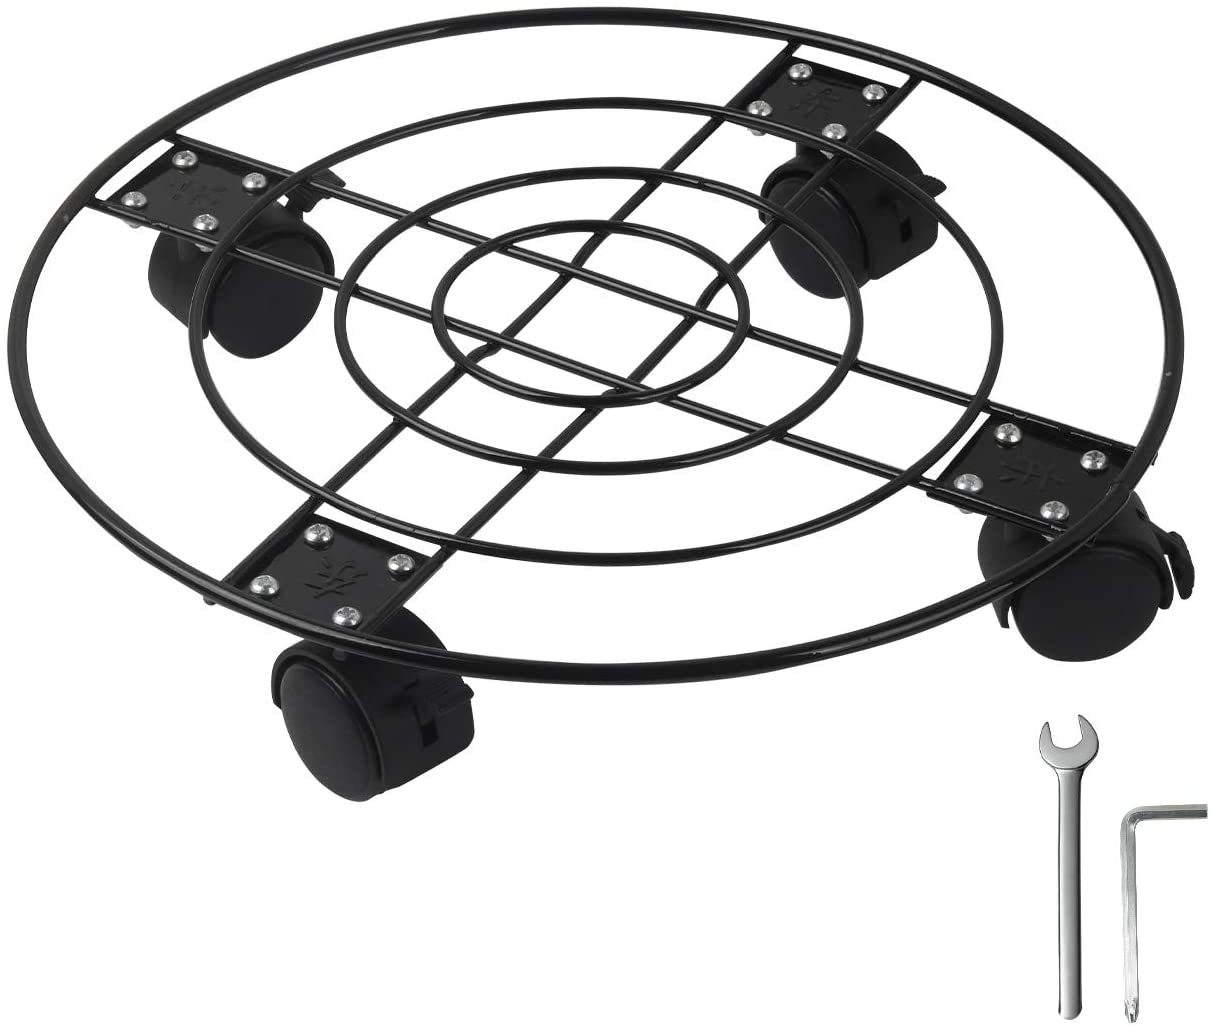 GARTOL Rolling Metal Plant Caddy - 13'' Iron Round Plant Stand on Wheels, Garden Flower Pot Planter Mover, Heavy Duty Potted Plant Dolly for Outdoor & Indoor with Locking, Black